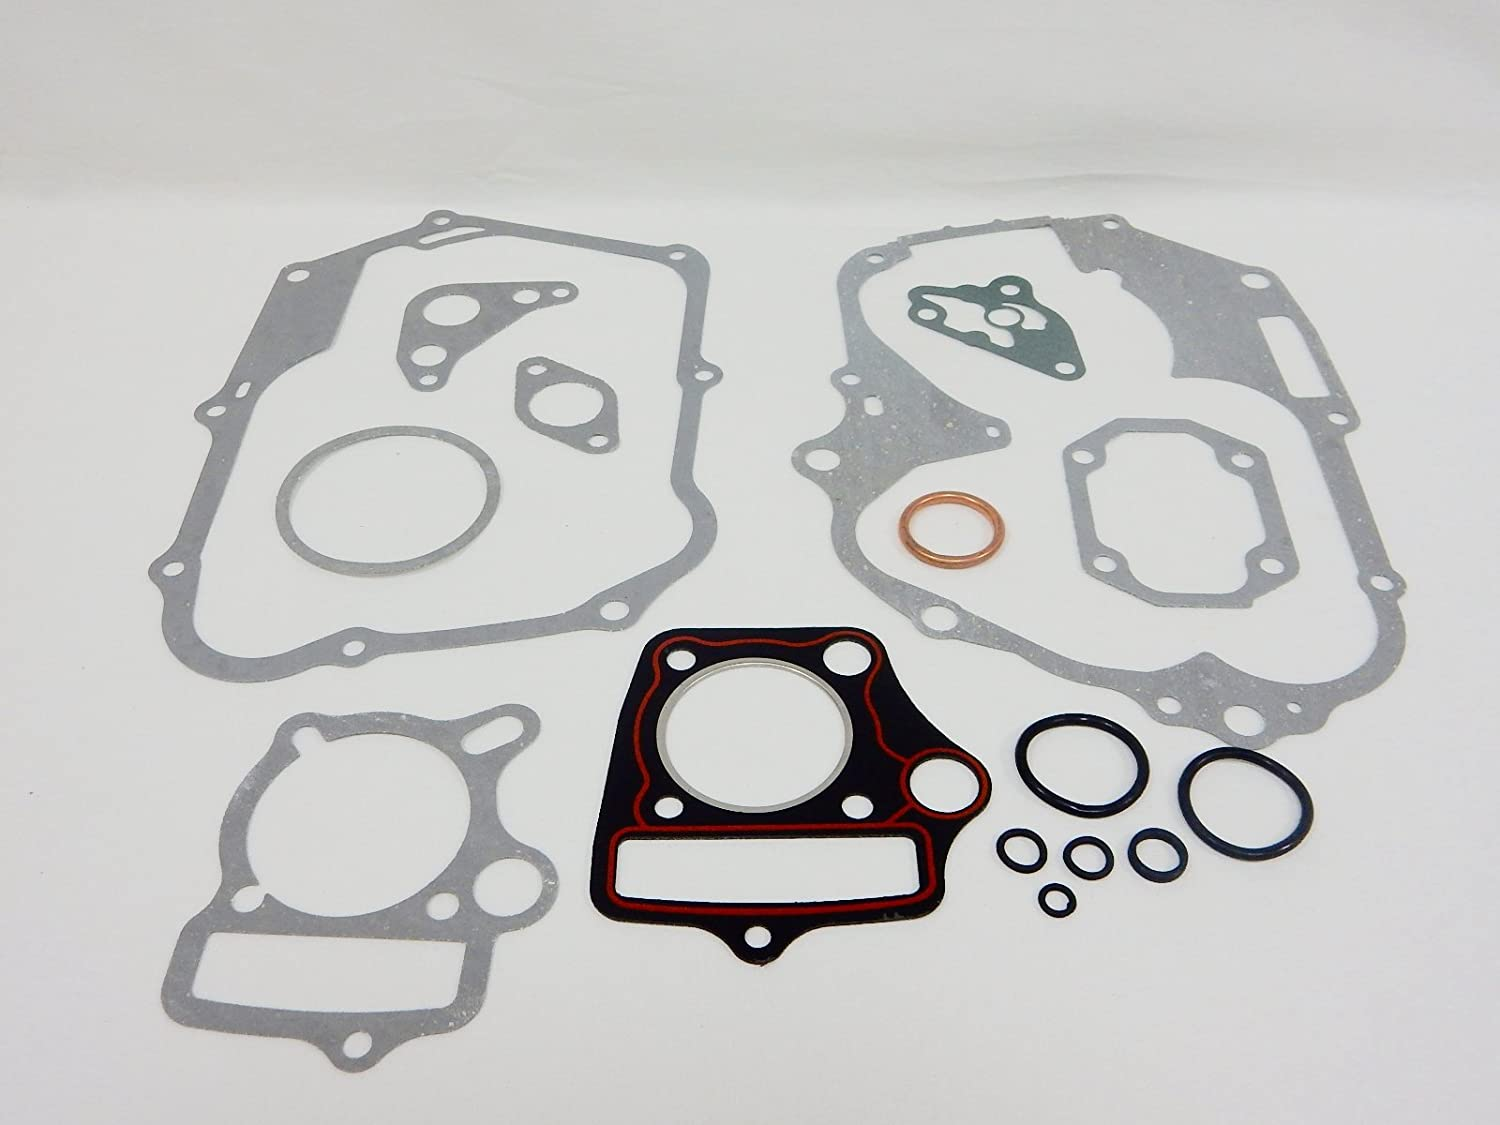 90cc GASKET KIT FOR CHINESE ATVS AND DIRT BIKES WITH HONDA CLONE MOTORS LG